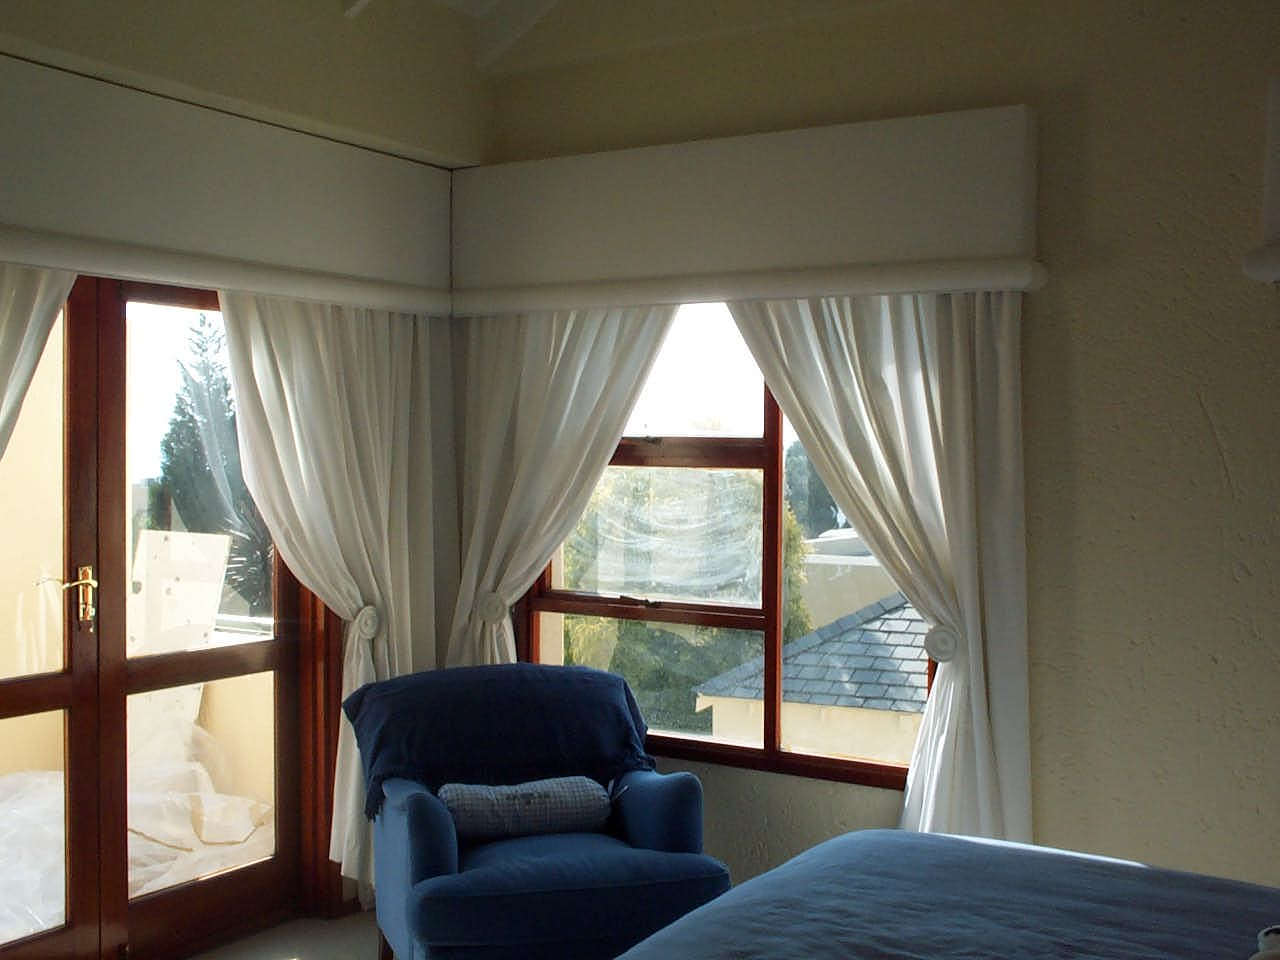 upholstered armchair and curtains